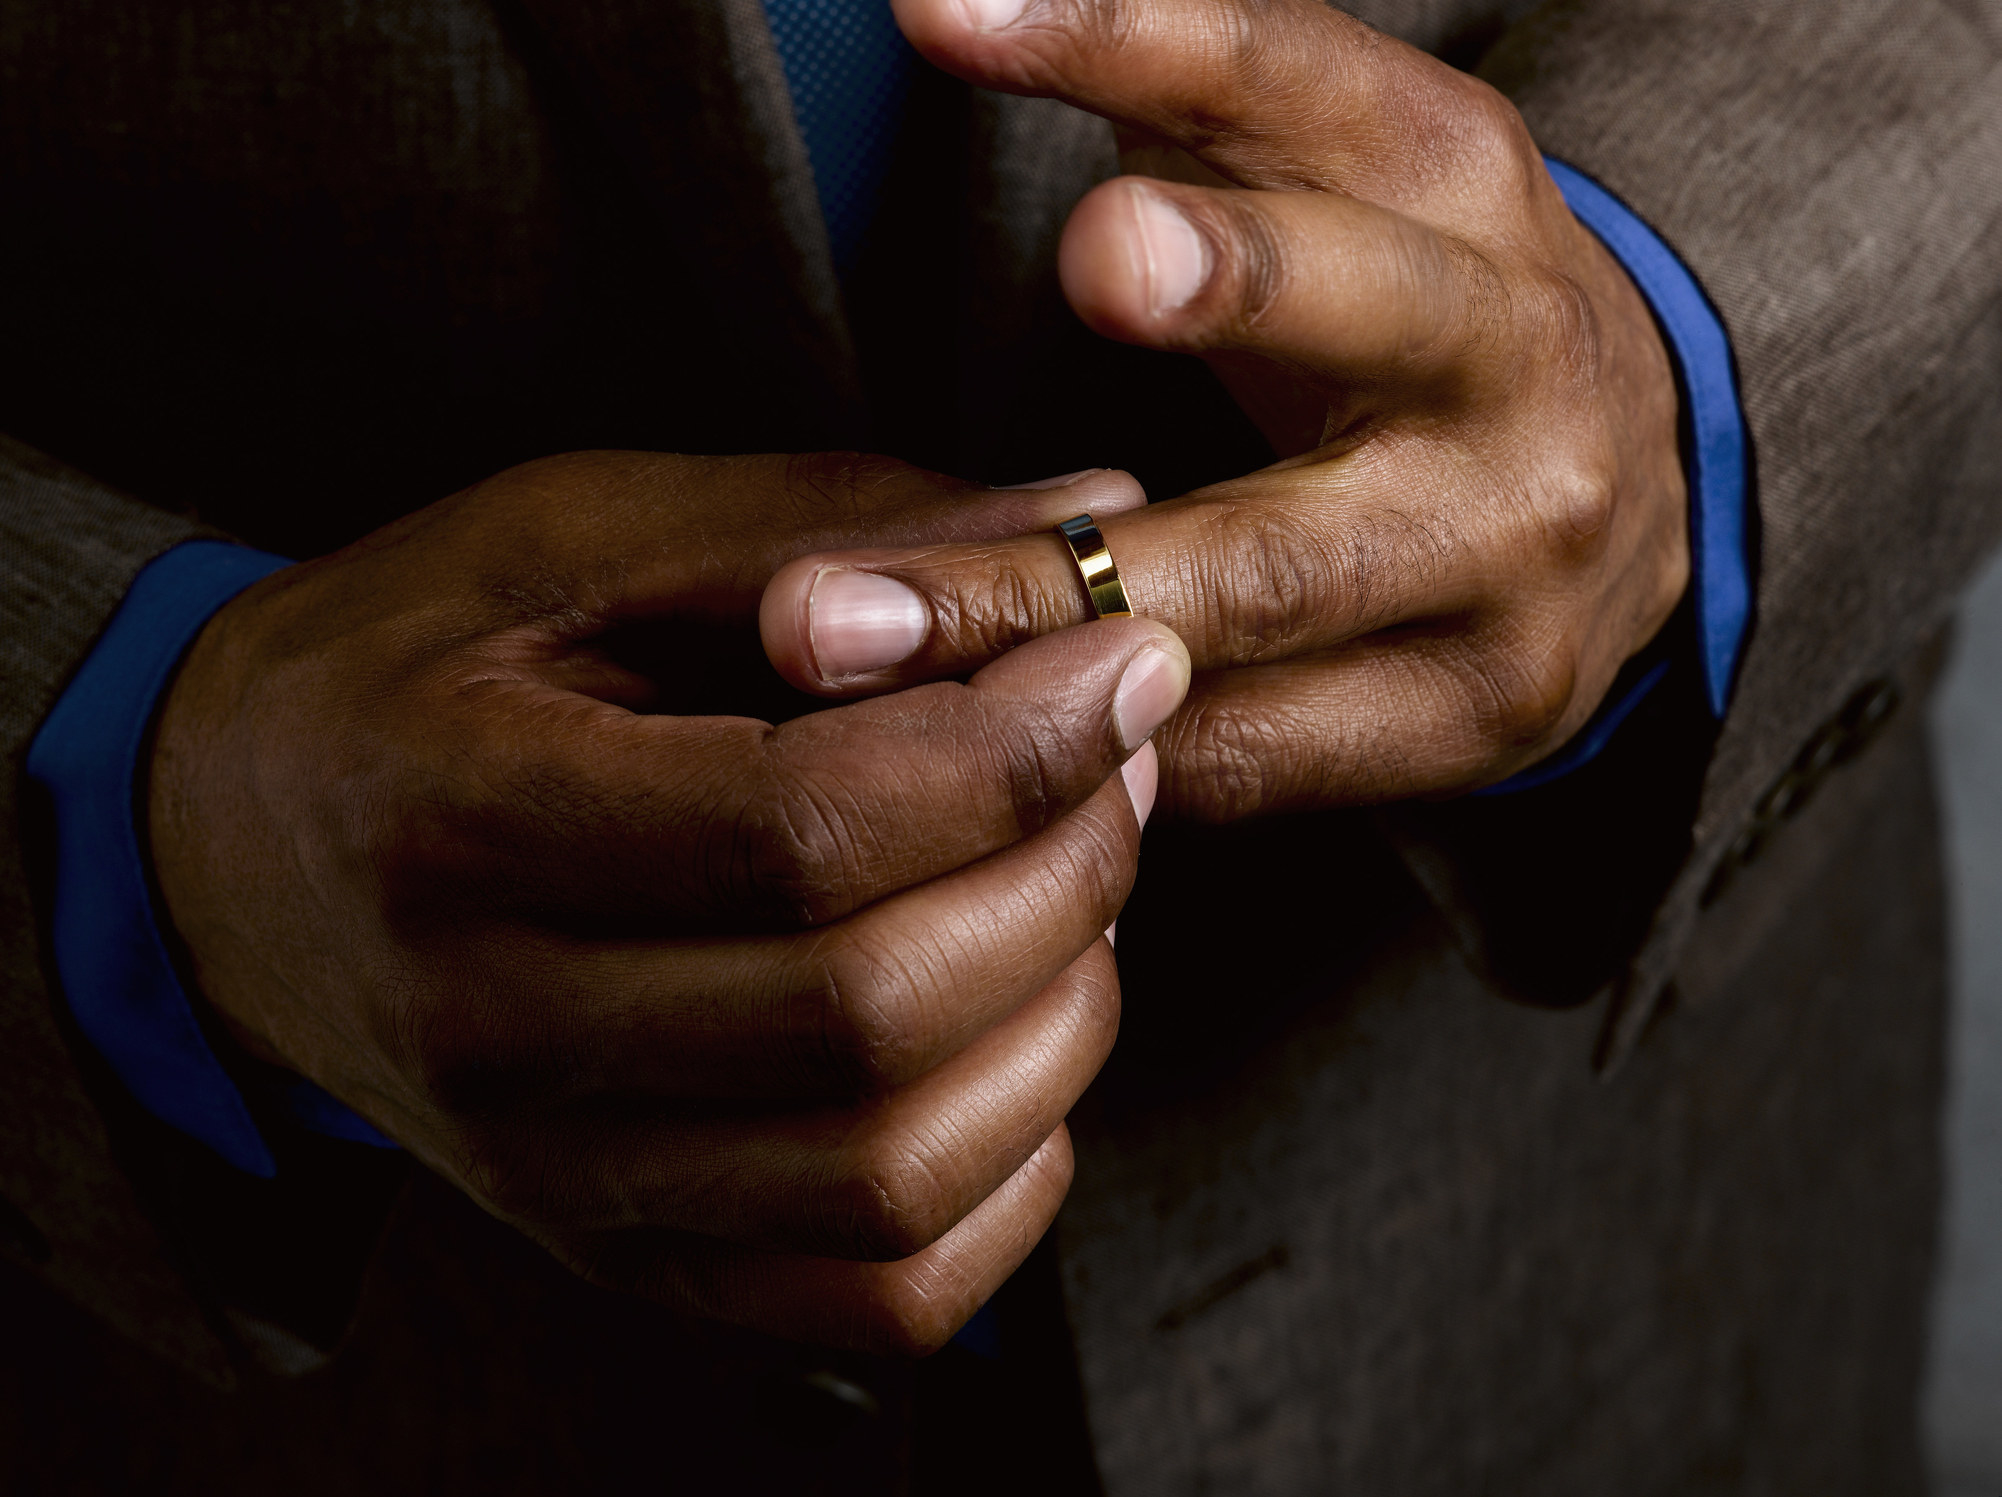 A man's hand with a wedding ring